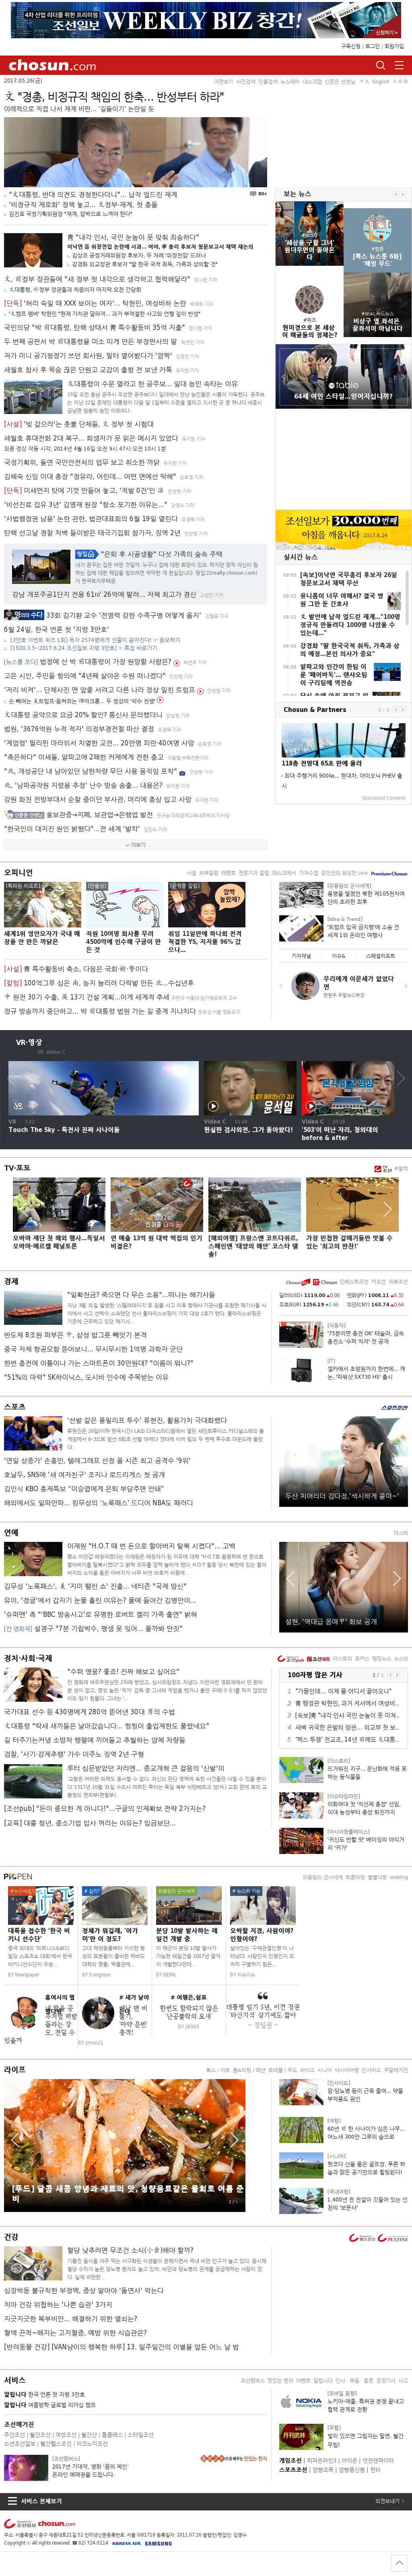 chosun.com at Friday May 26, 2017, 9:04 a.m. UTC